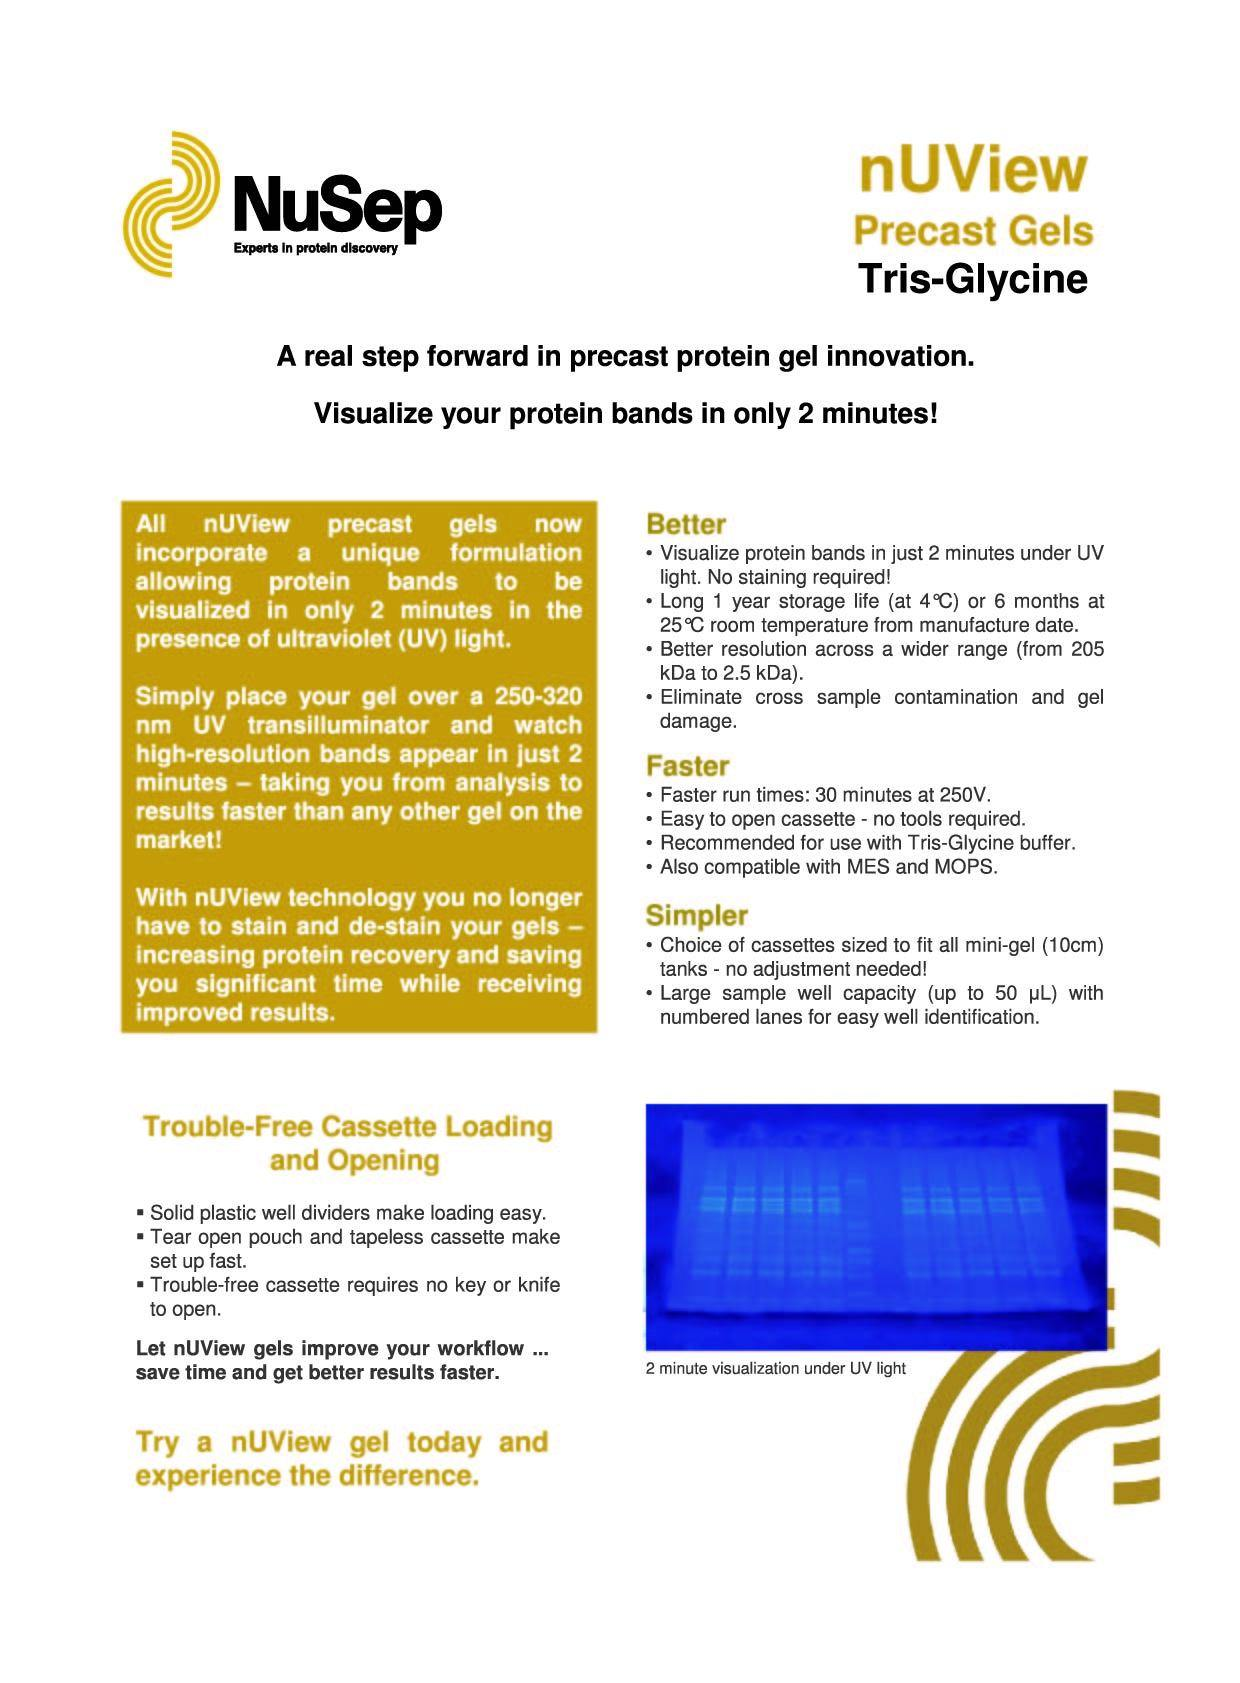 nUView Tris-Glycine Precast Gel Box for ThermoFisher/Invitrogen Tanks - protein gel innovation